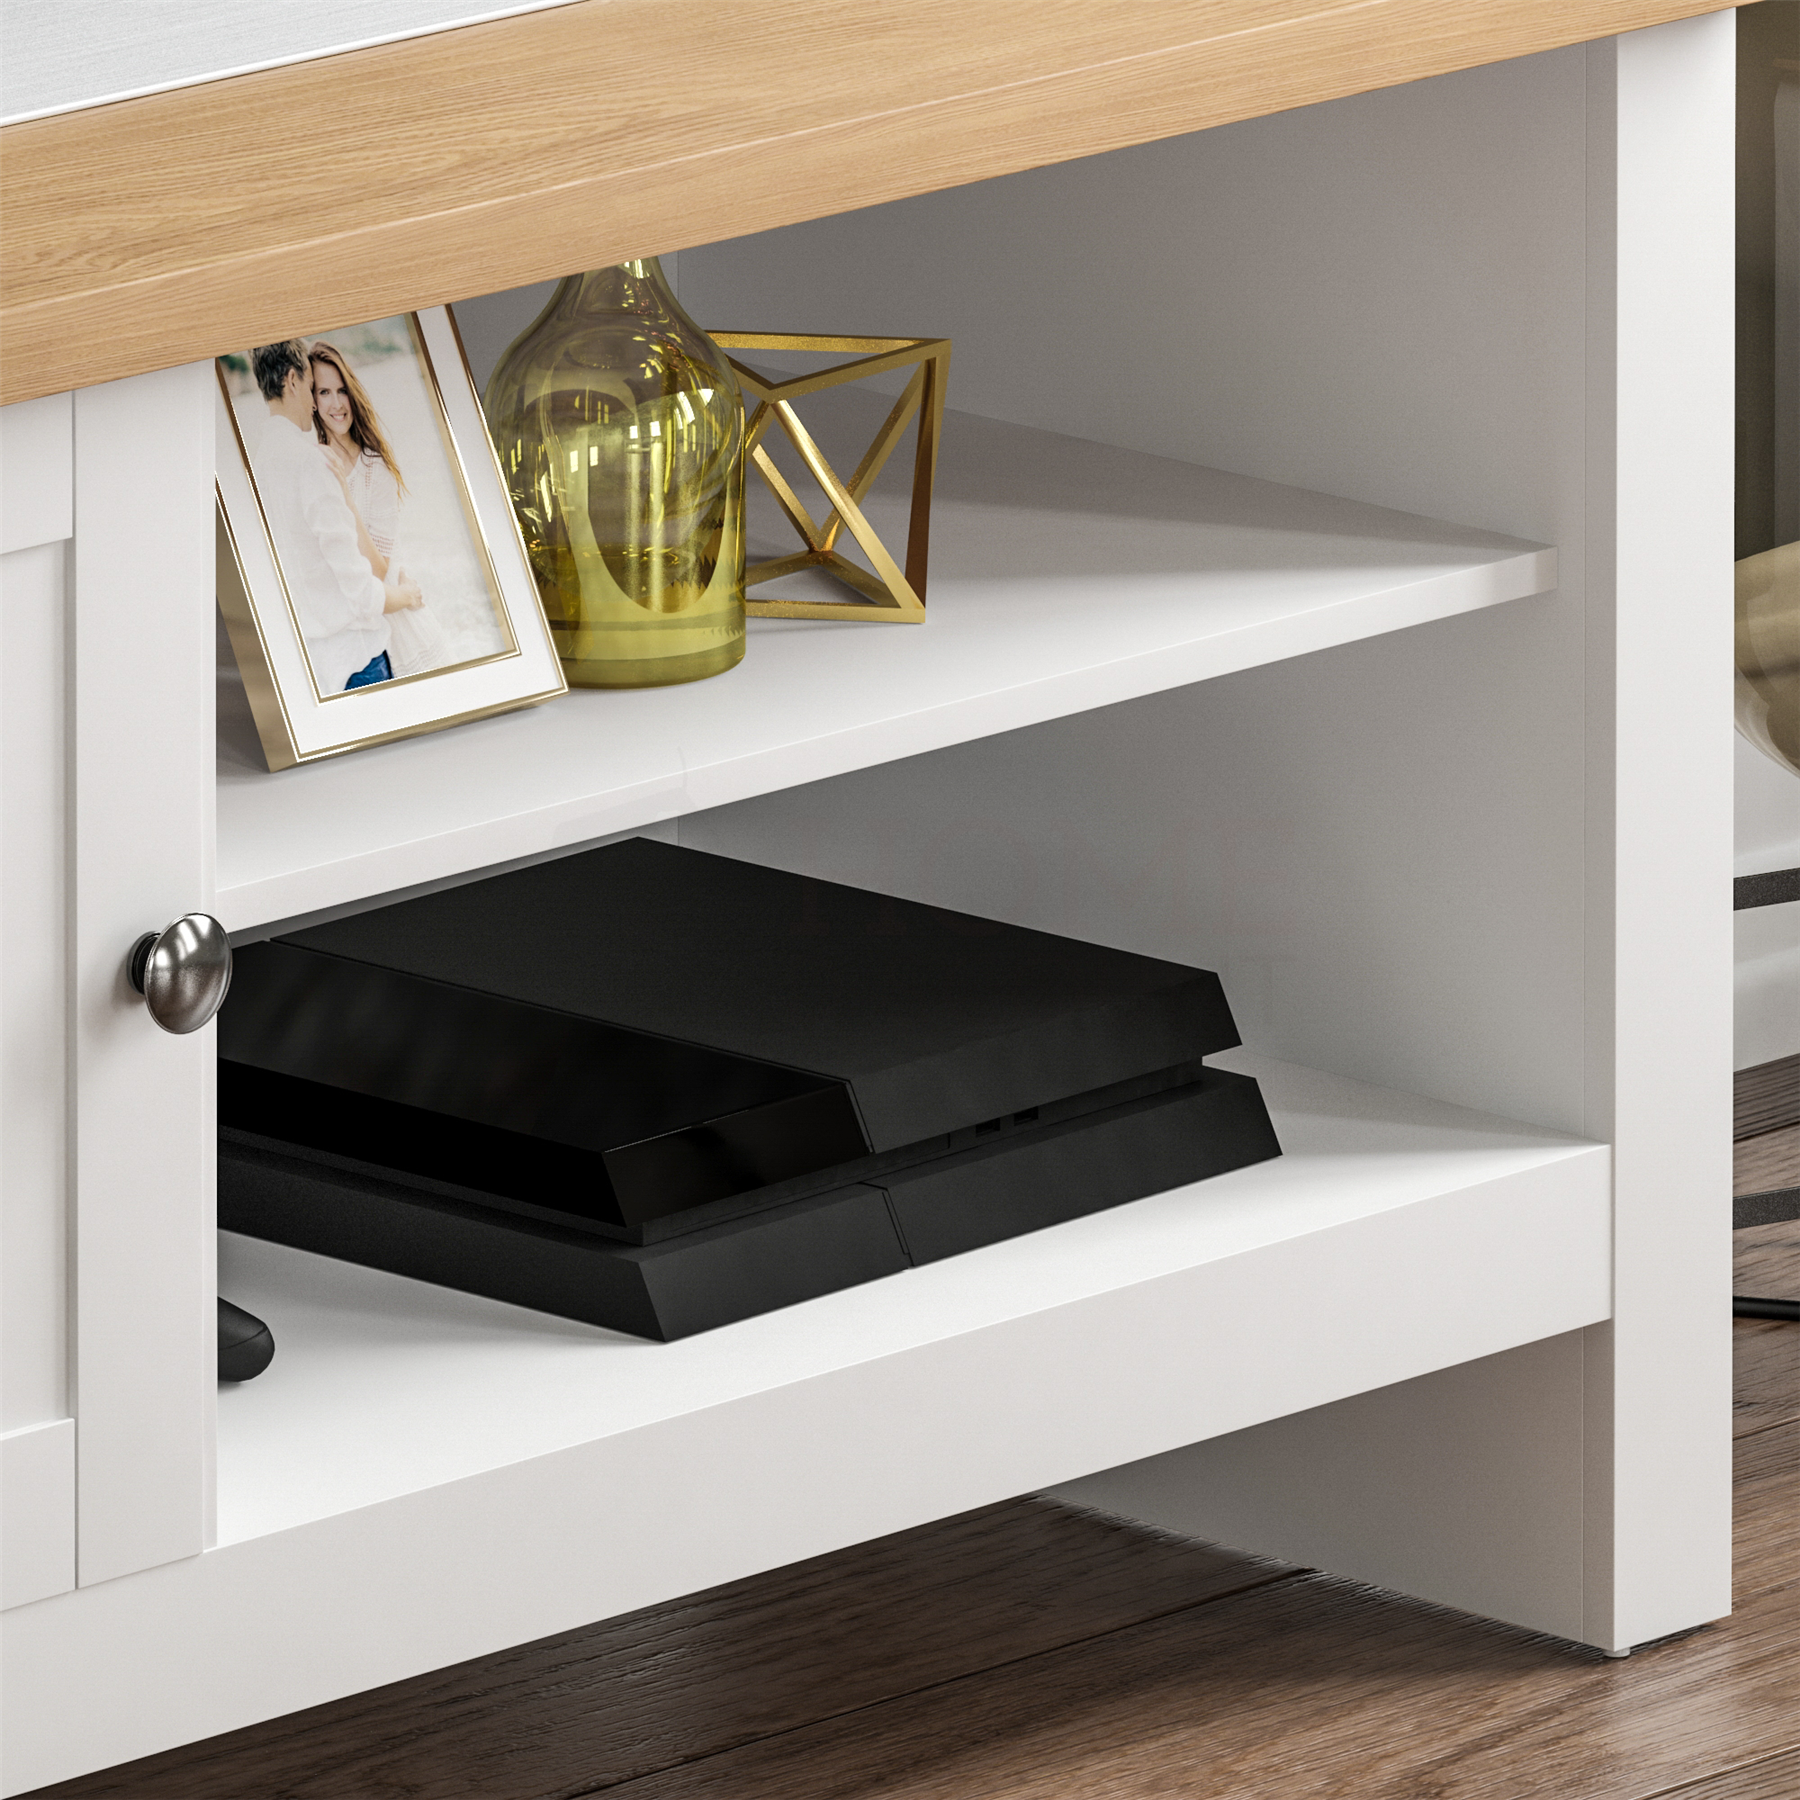 thumbnail 7 - Modern White TV Stand Cabinet LED Unit Matt body and High Gloss Doors  Lights